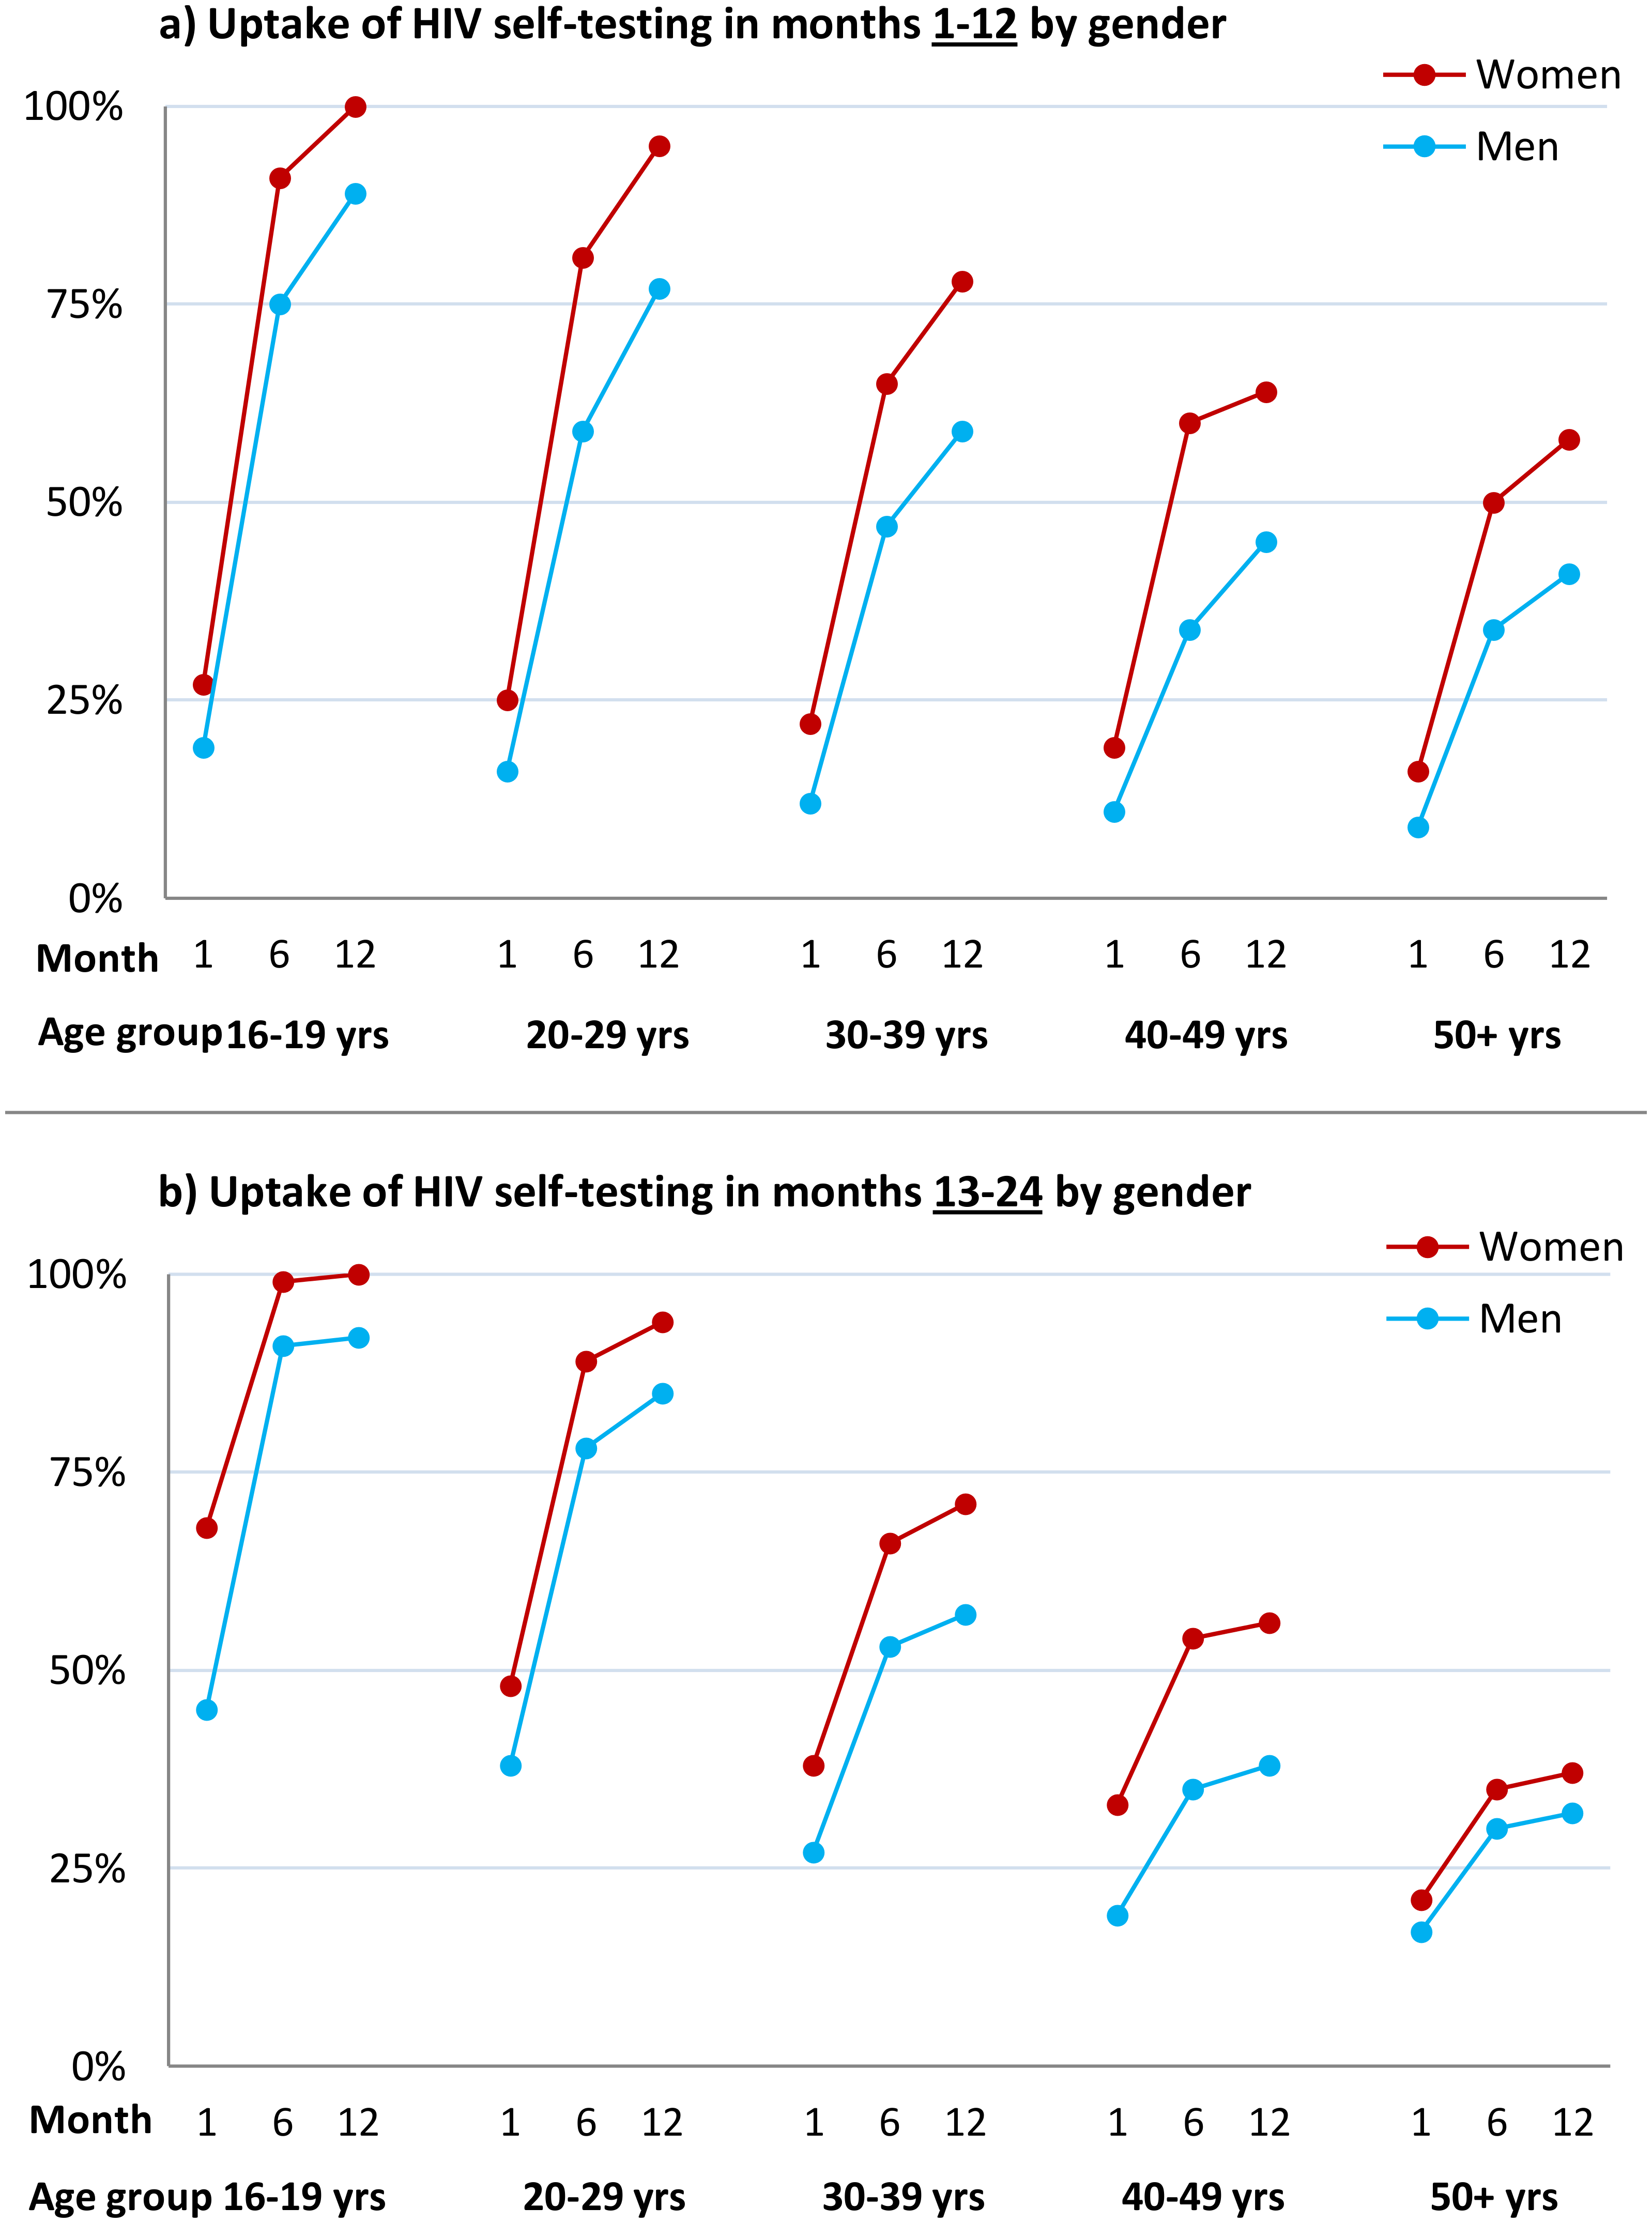 Cumulative uptake of HIV self-testing by sex, age group, and time point.